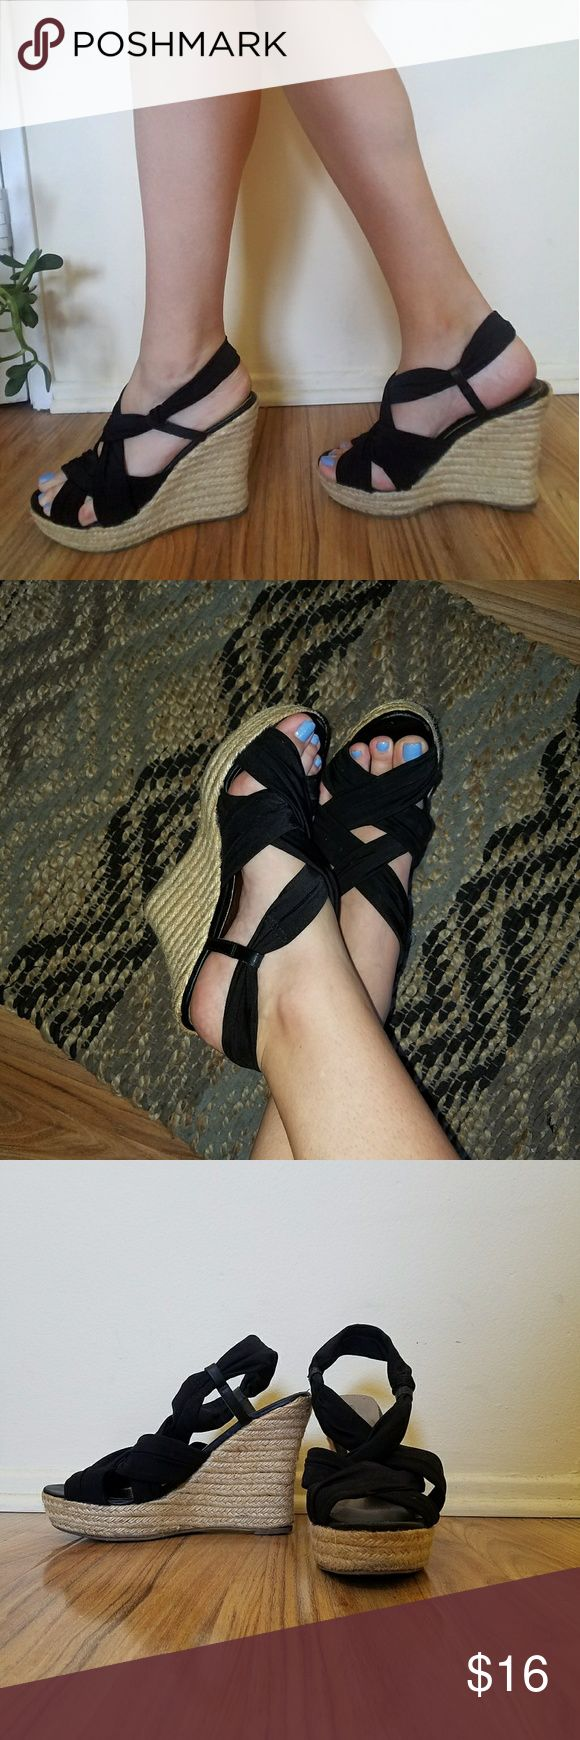 Nine West Poolside Summer Wedges -Most comfortable pair of wedges ever, so easy to walk in -These are made of swimsuit material and never hurt or pull or give me blisters  -Worn maybe 5x Nine West Shoes Wedges